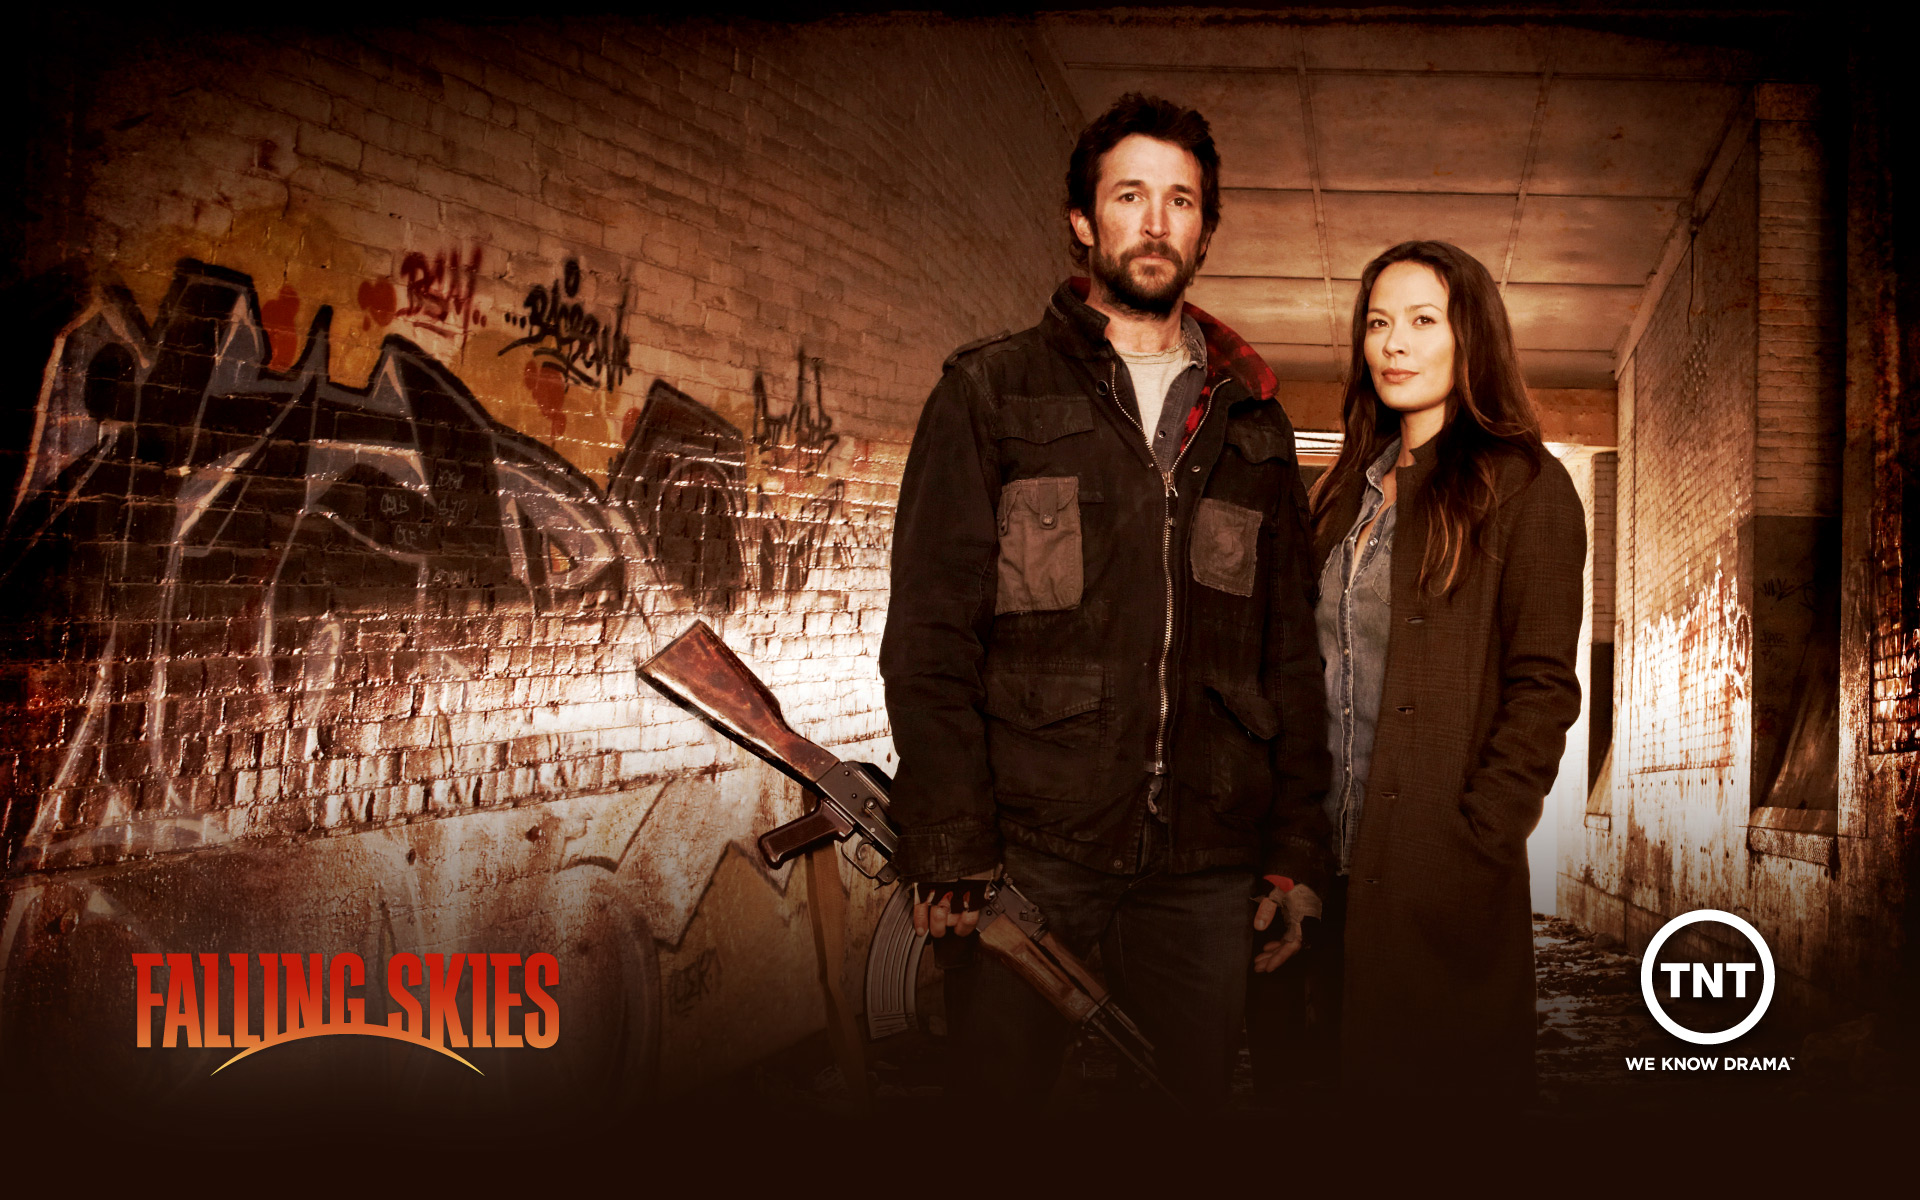 Falling Skies wallpaper 12